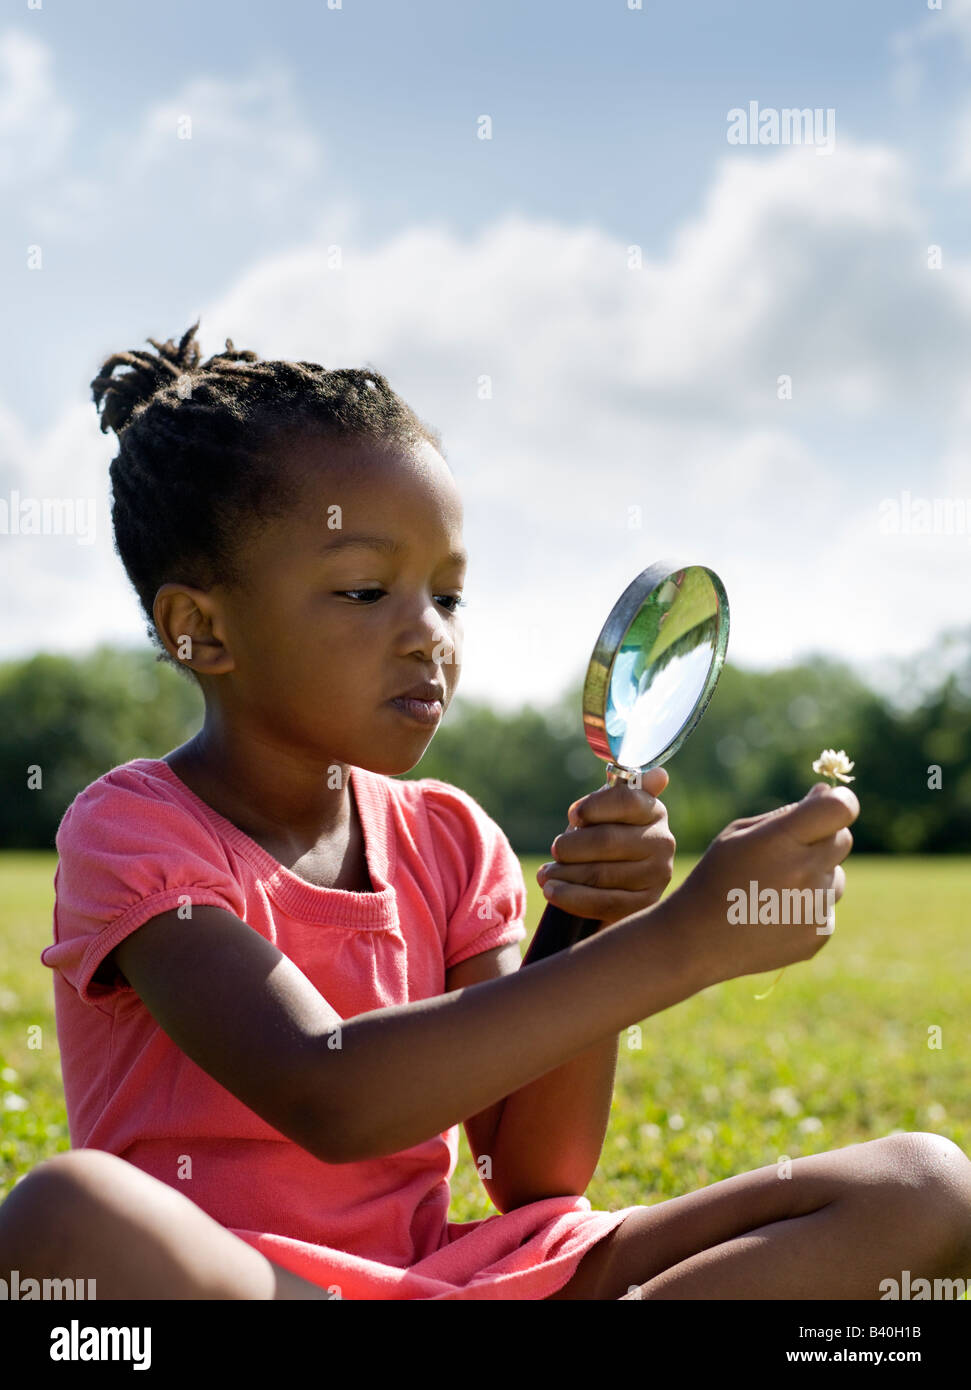 Young African American girl looking at flower with magnifying glass Chicago - Stock Image